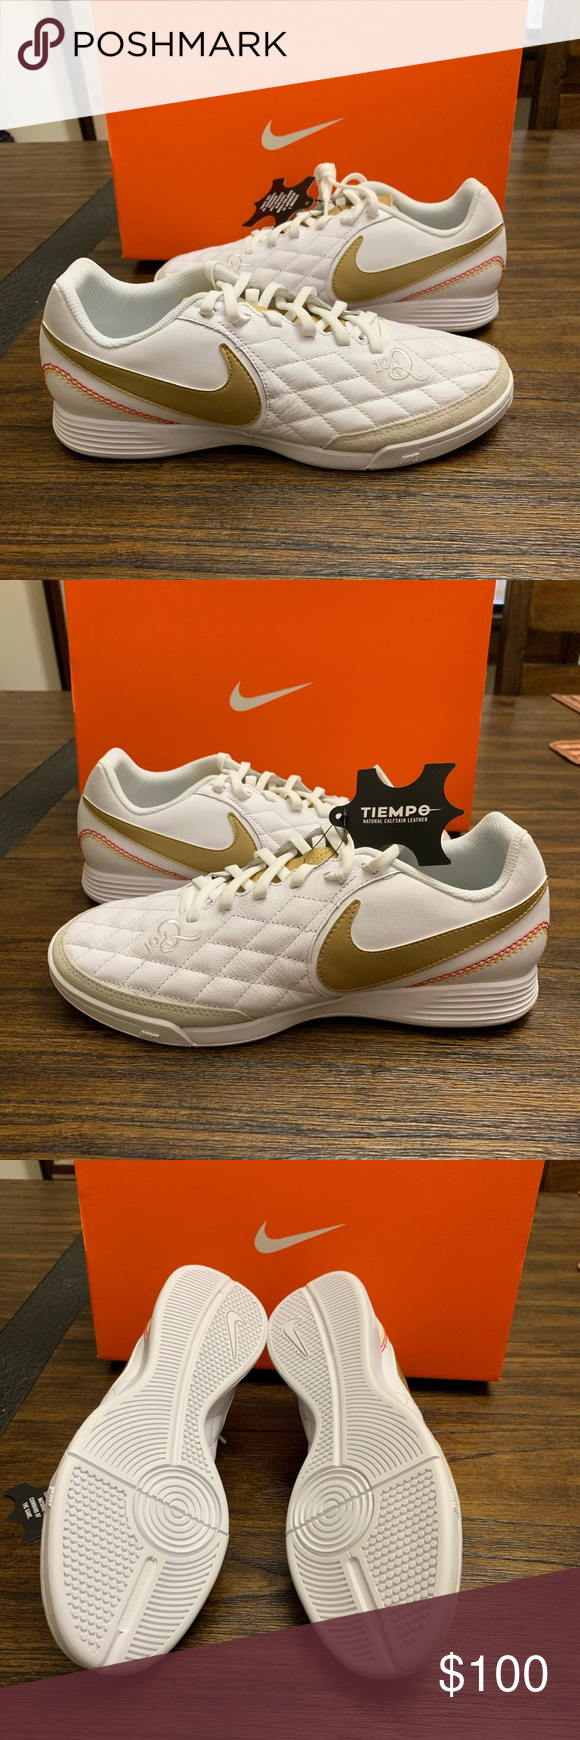 Nike Tiempo Finale X 10 R Indoor Soccer Shoes Bran New Special Edition Rolandinho Indoor Soccer Shoes 100 Percent Authentic Nike My Posh Closet Soccer Shoes Indoor Soccer Soccer